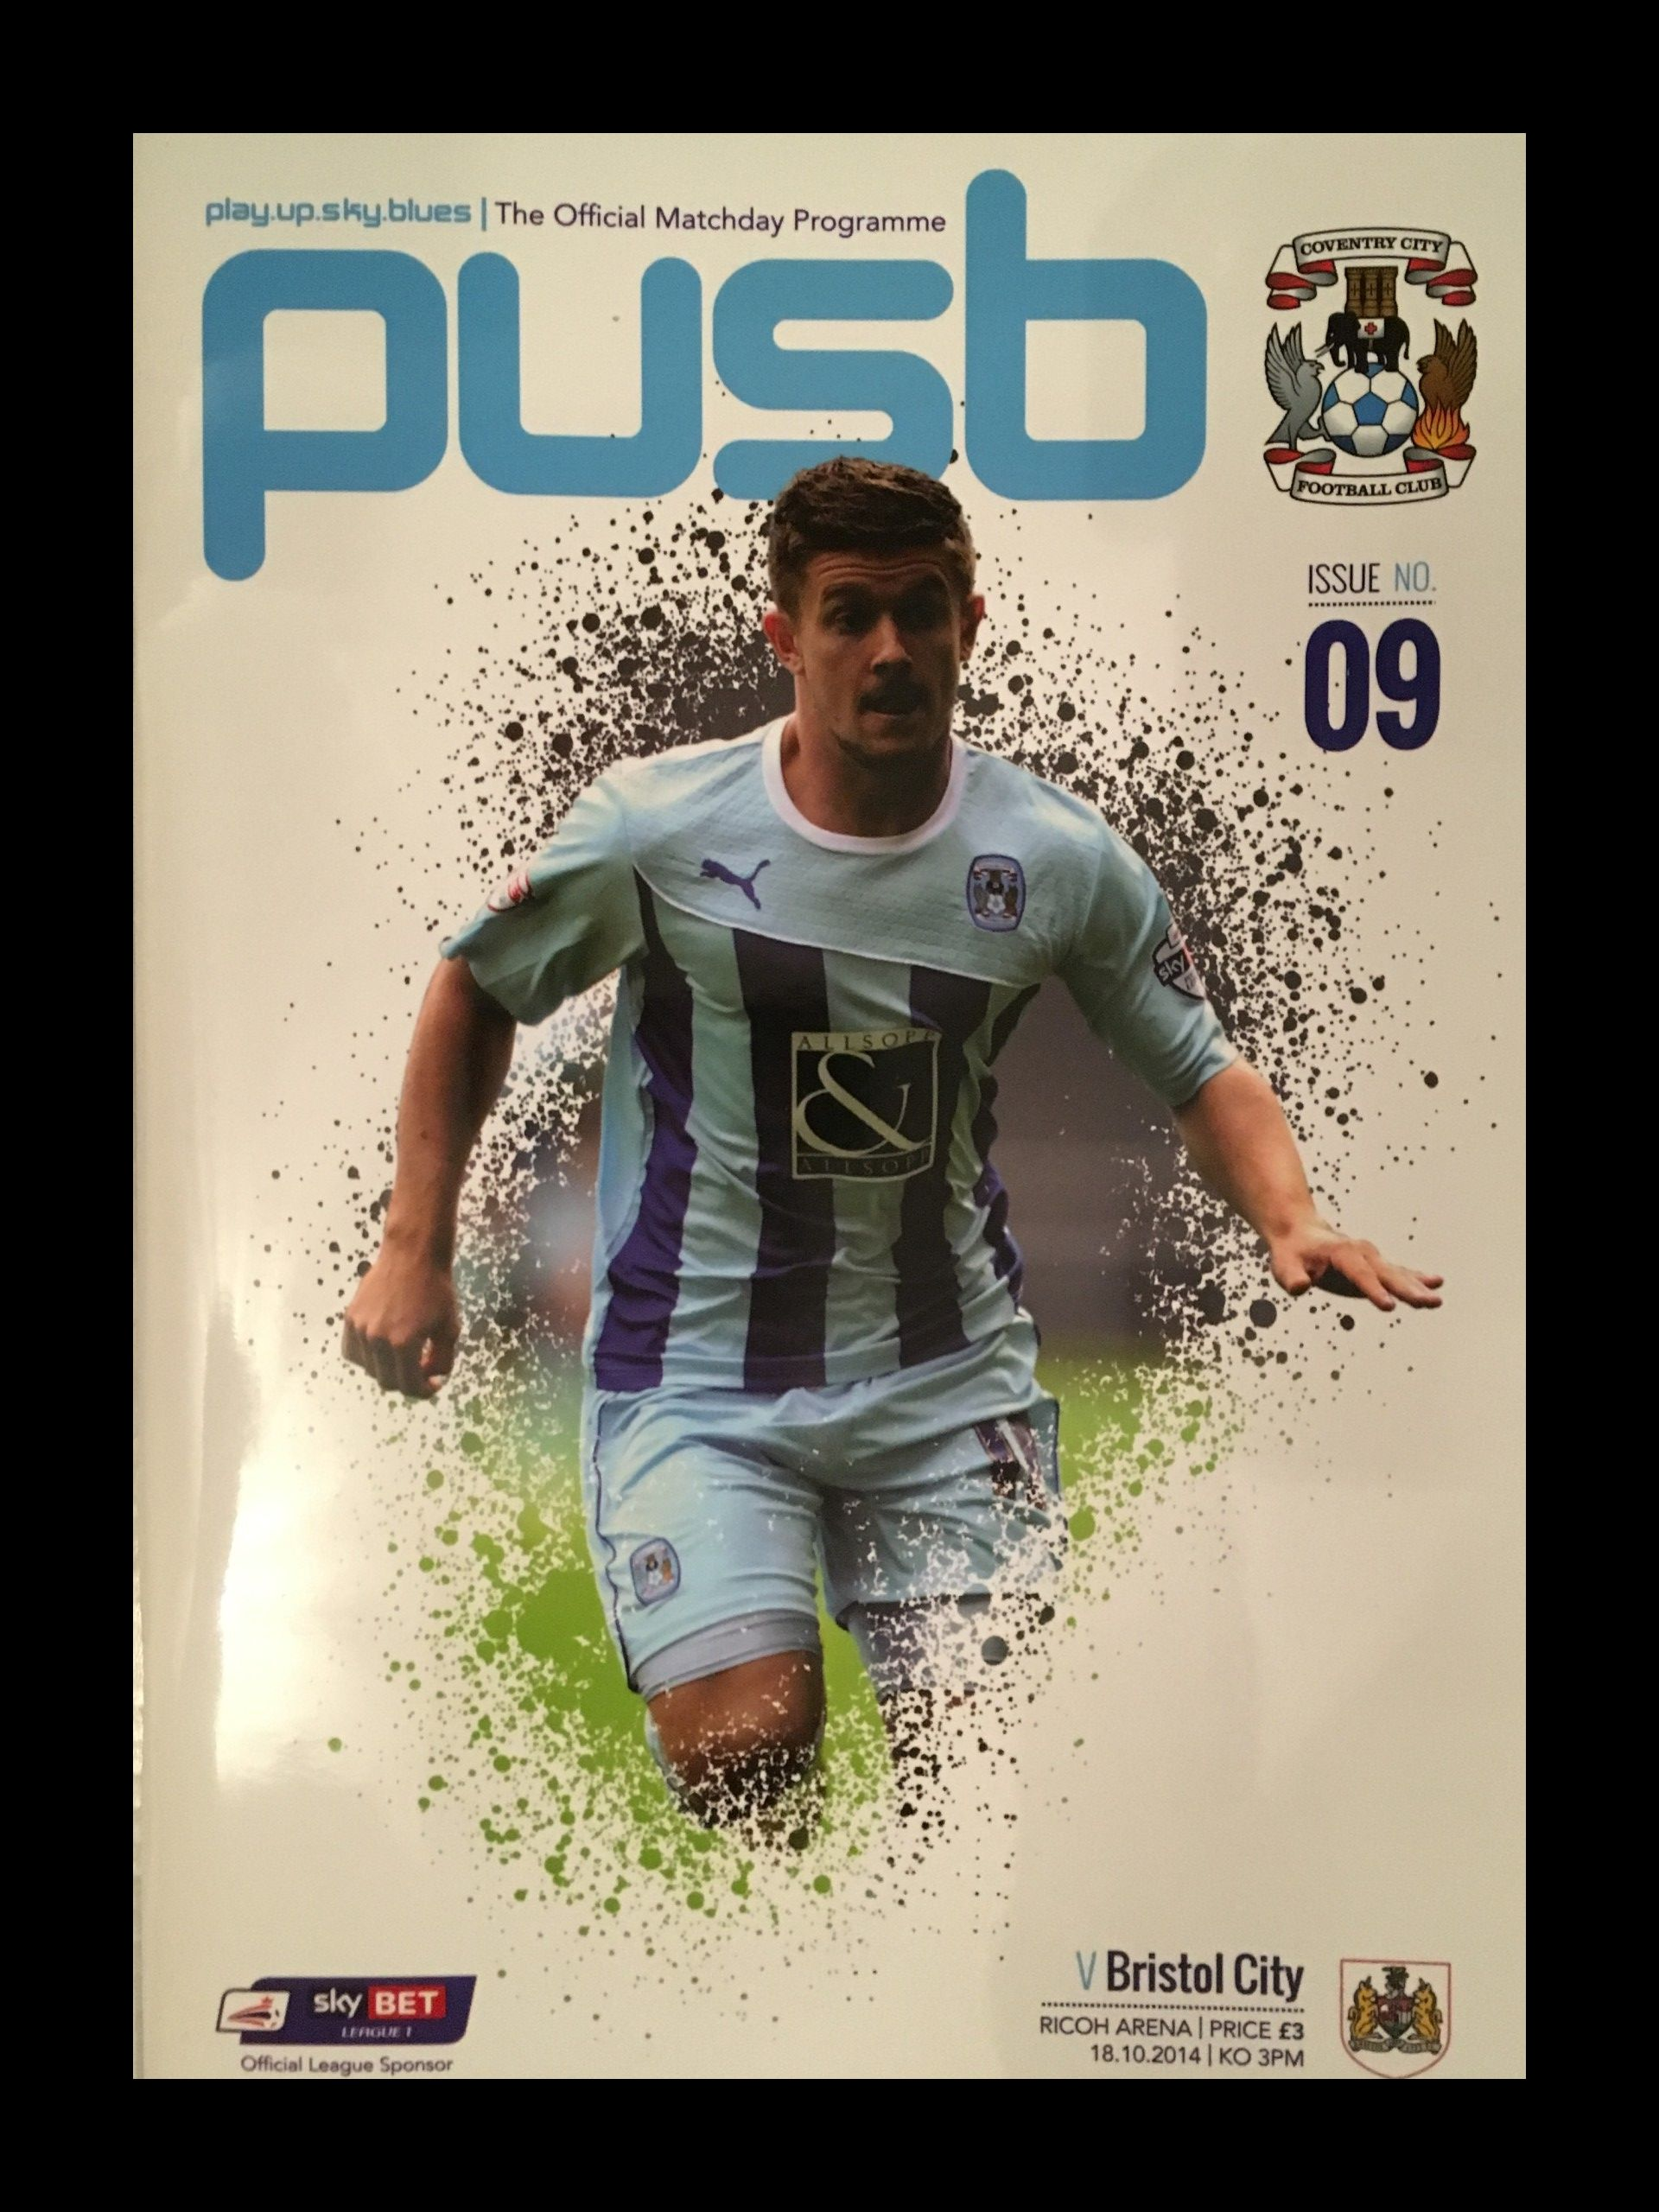 Coventry City v Bristol City 18-10-2014 Programme